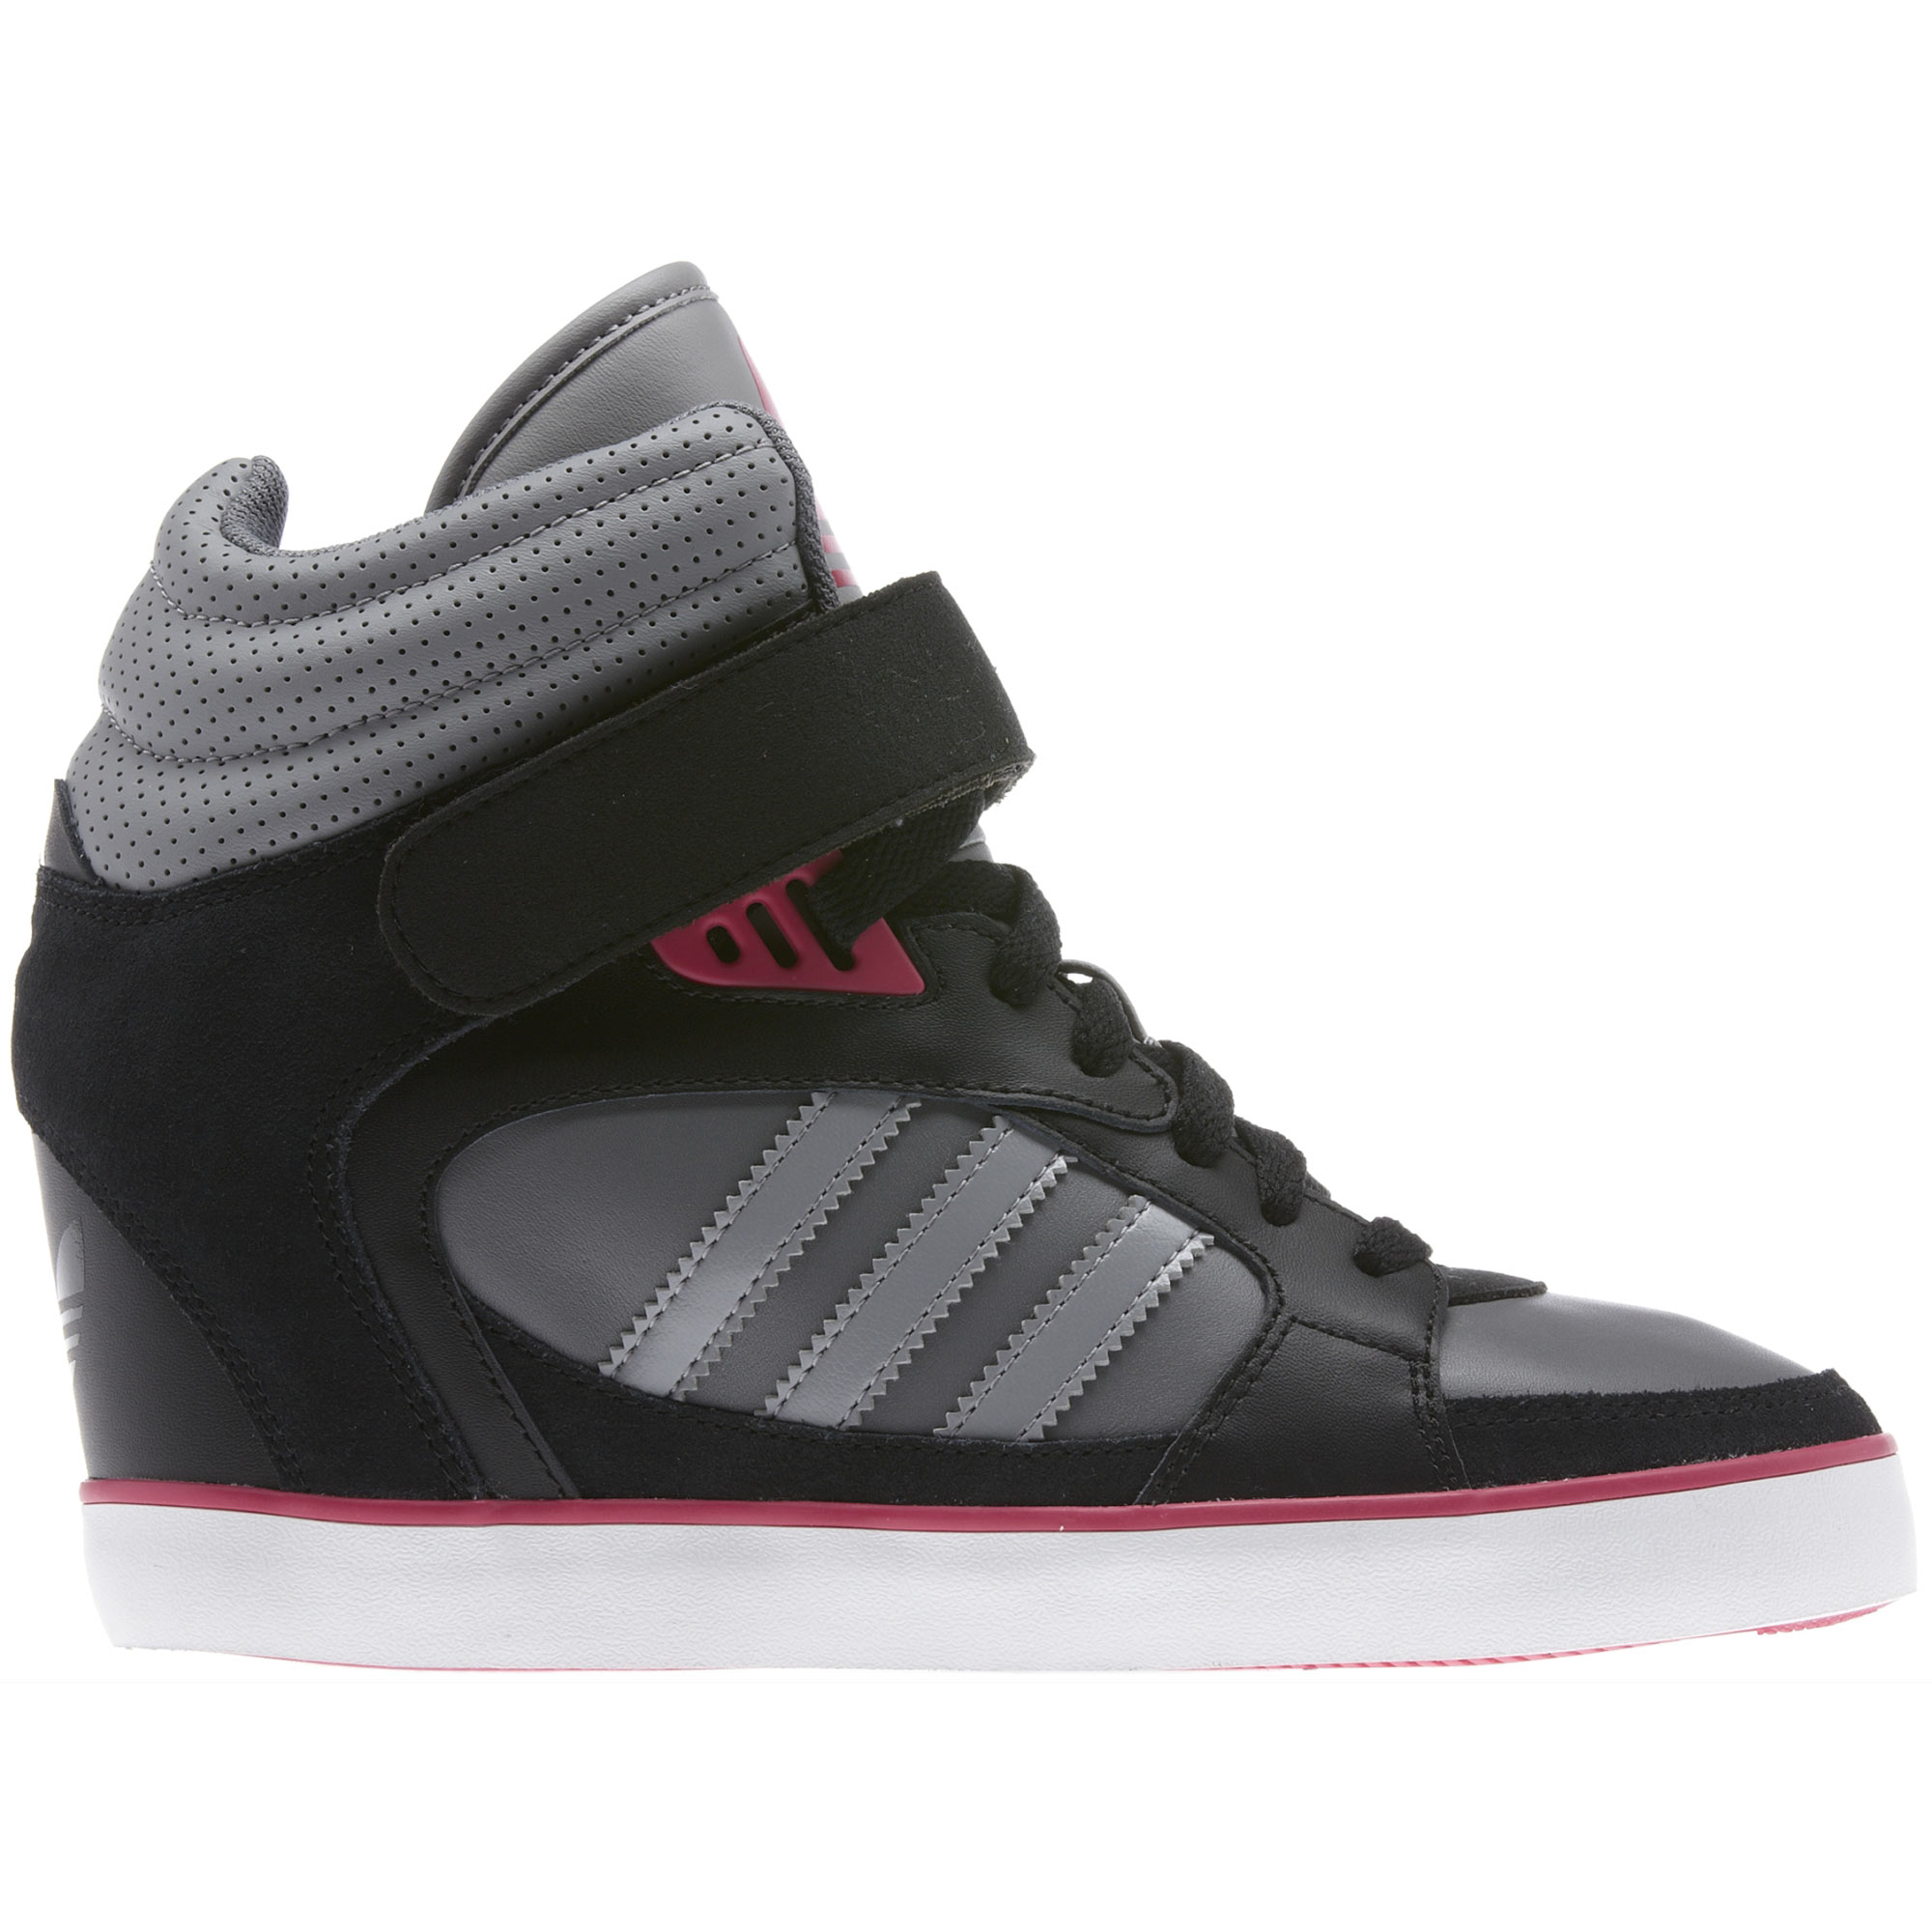 Adidas Amberlight Up chaussures